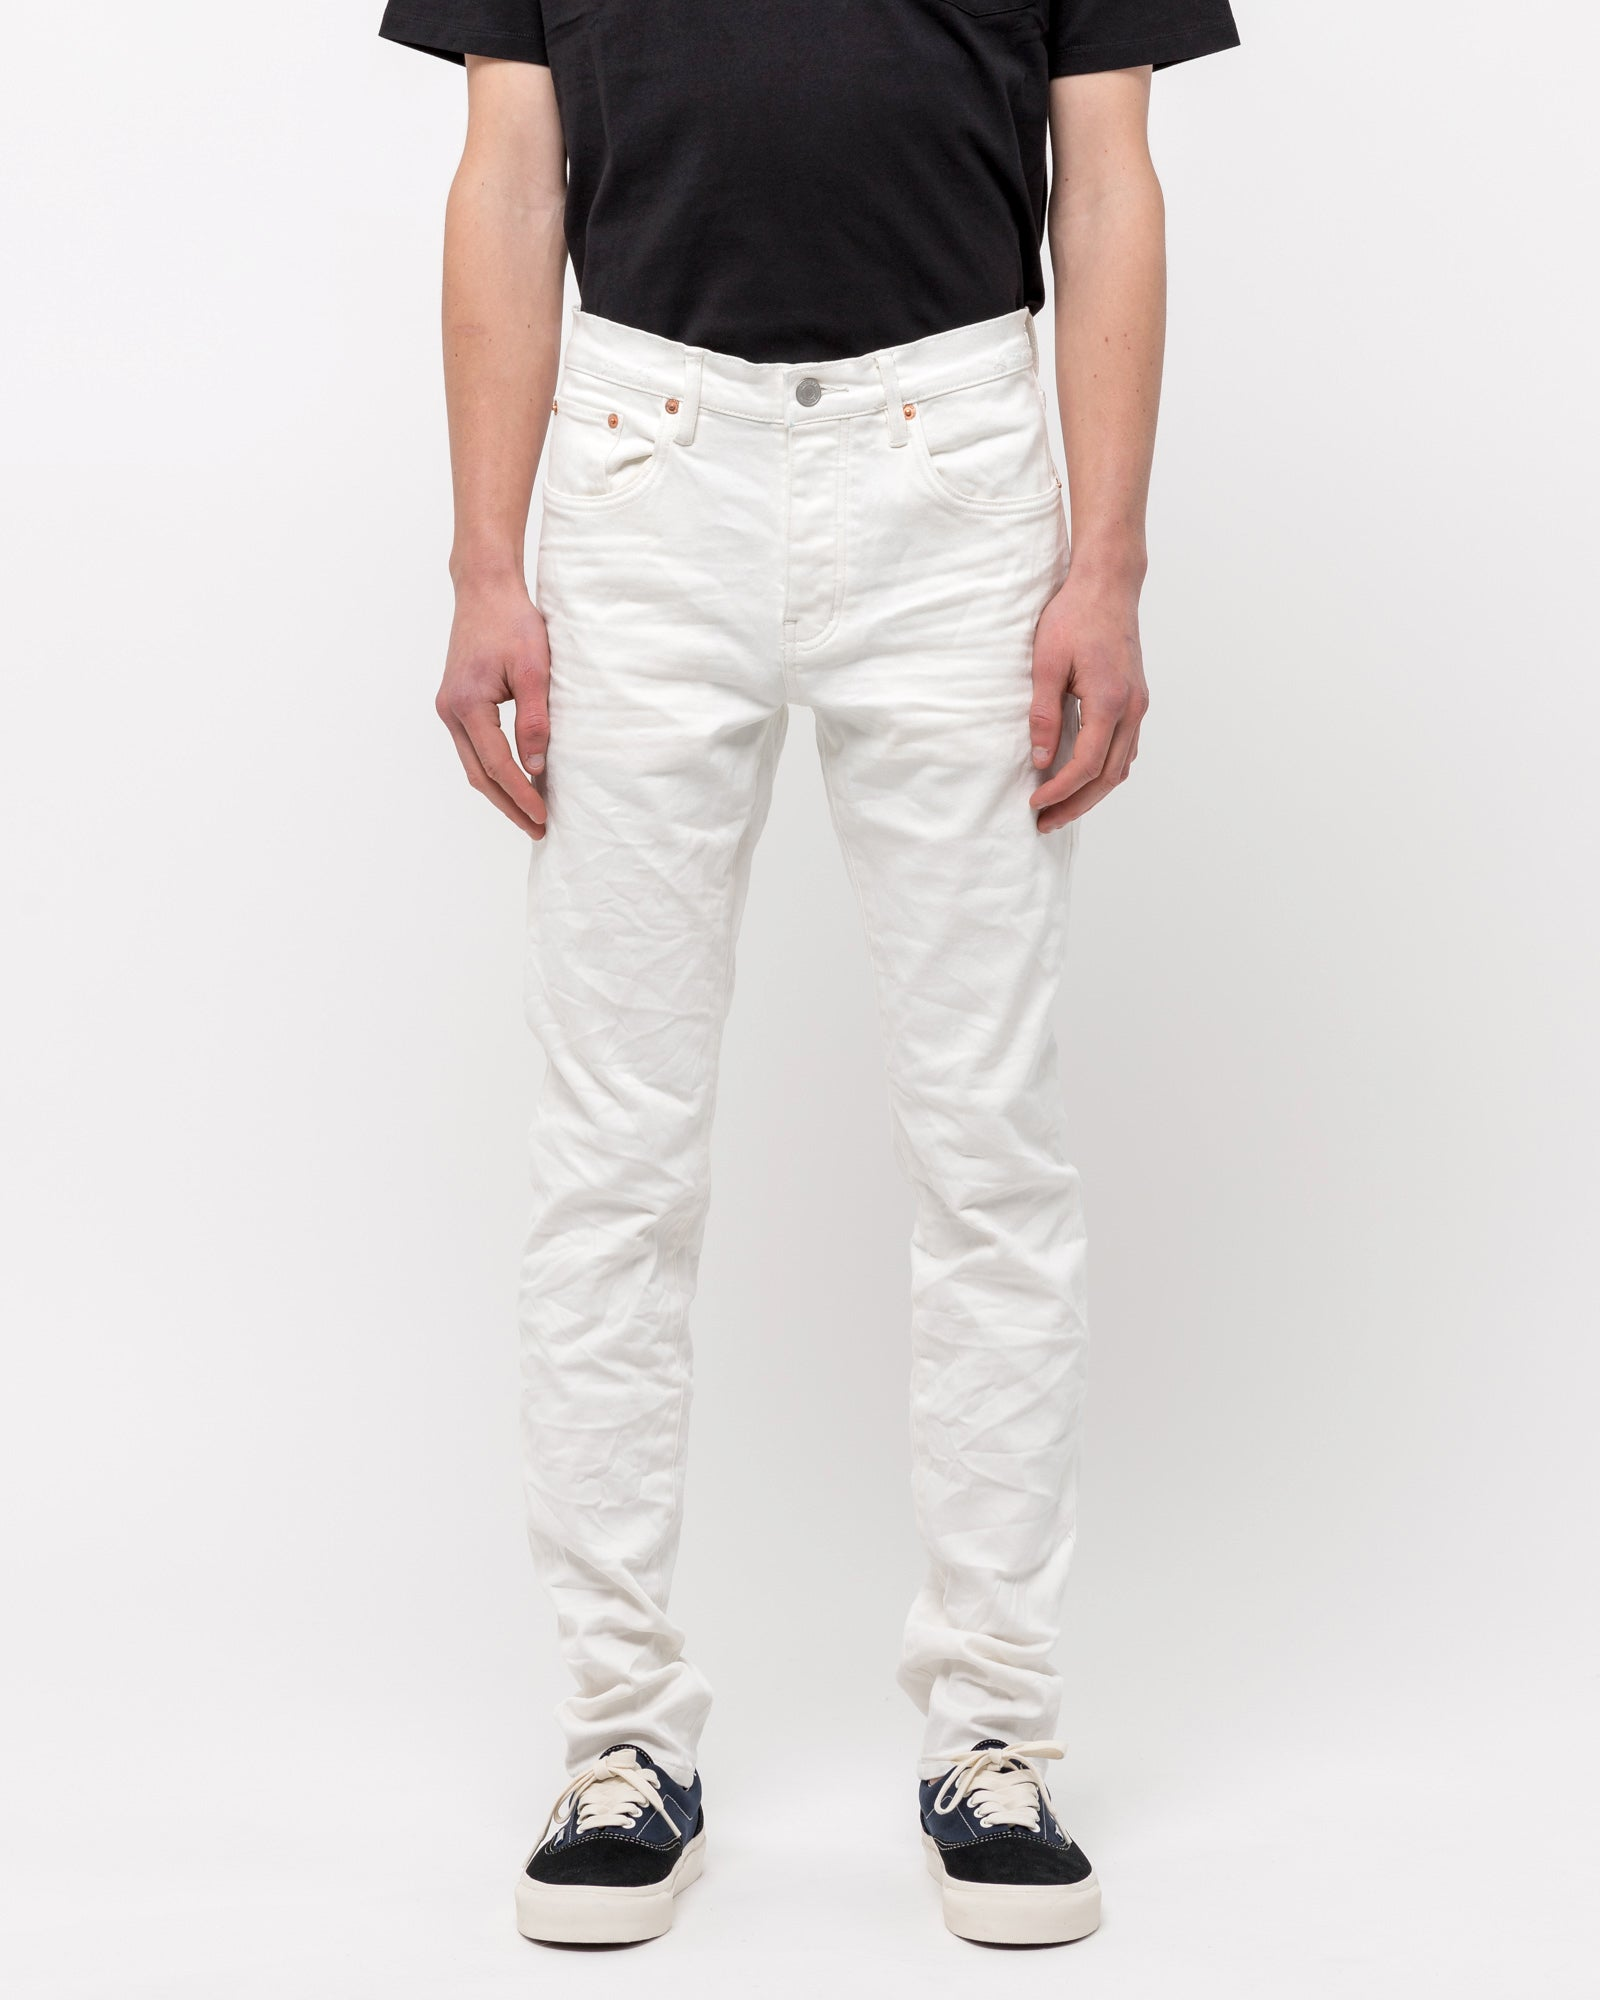 001 Slim Fit Jeans in White